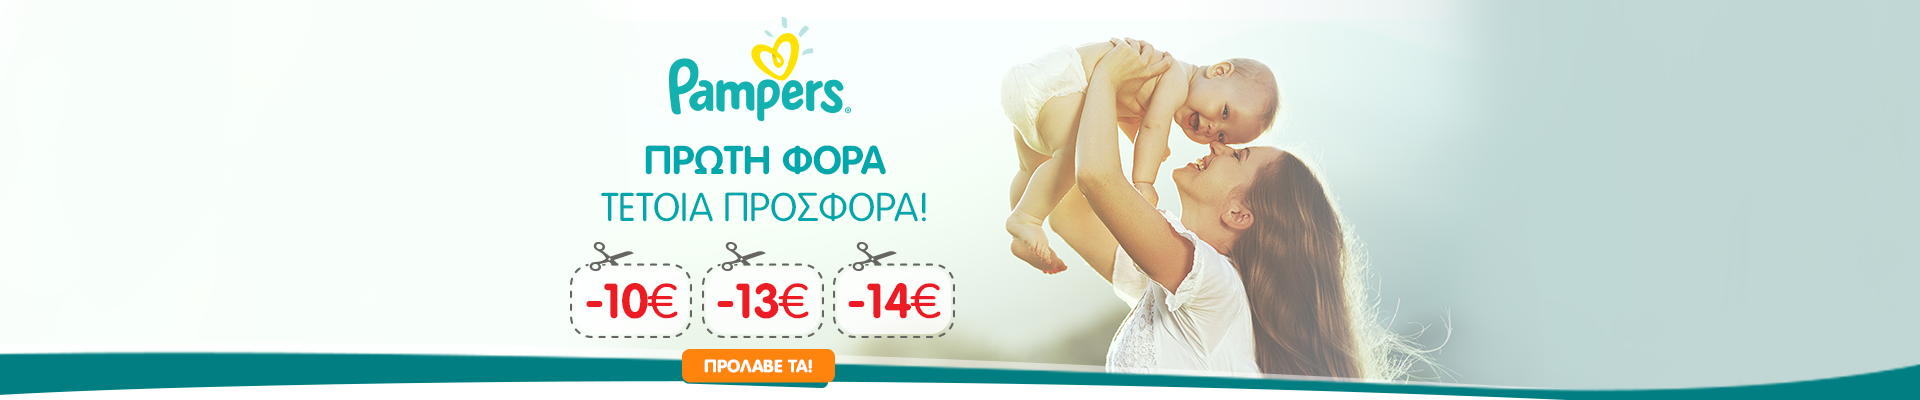 Pampers offers 8/10